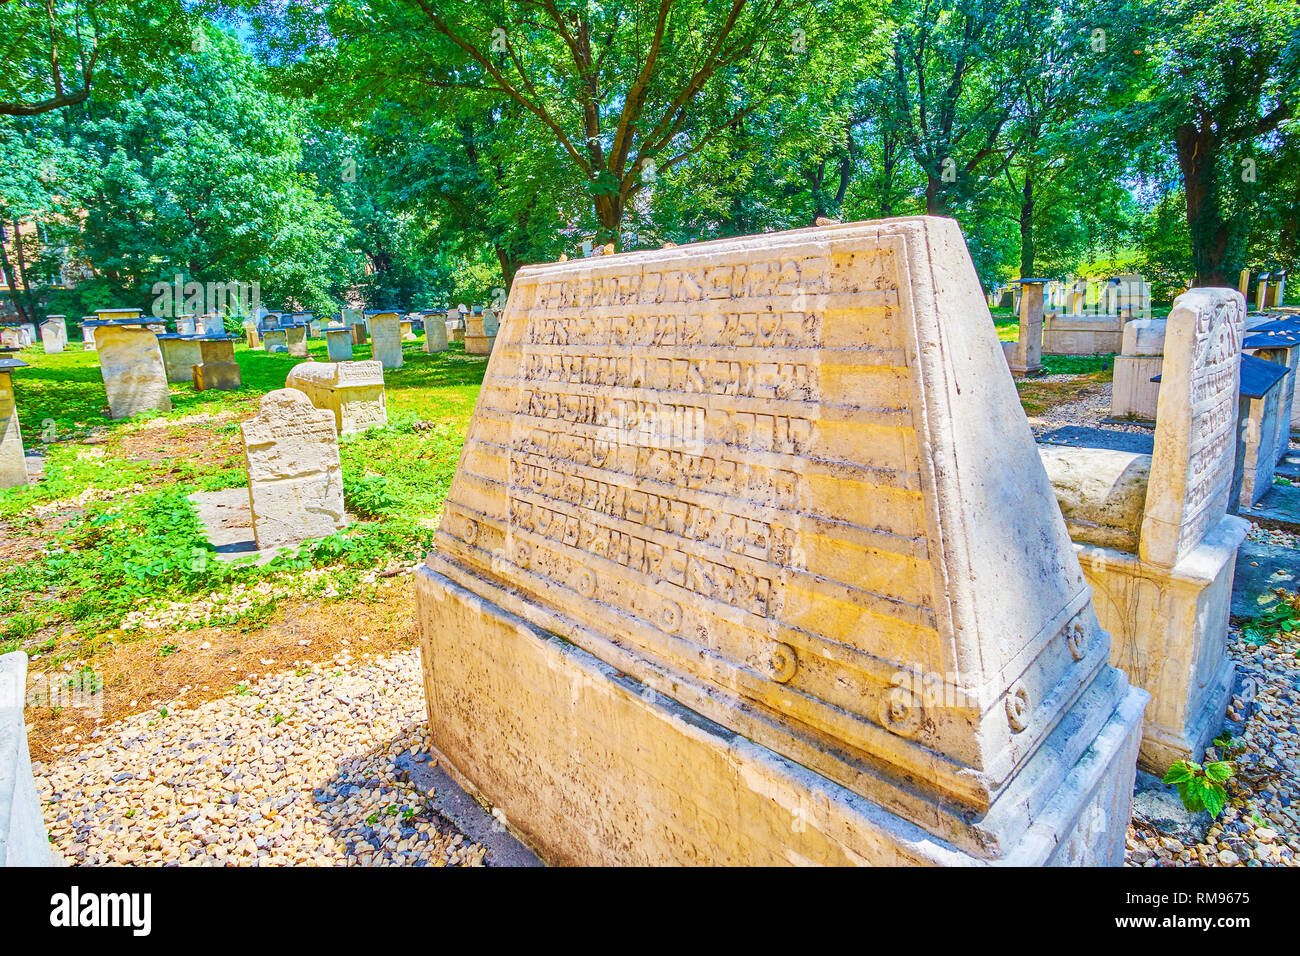 KRAKOW, POLAND - JUNE 21, 2018: The medieval preserved tombstone with large amount of inscriptions in old Jewish language,  on June 21 in Krakow - Stock Image